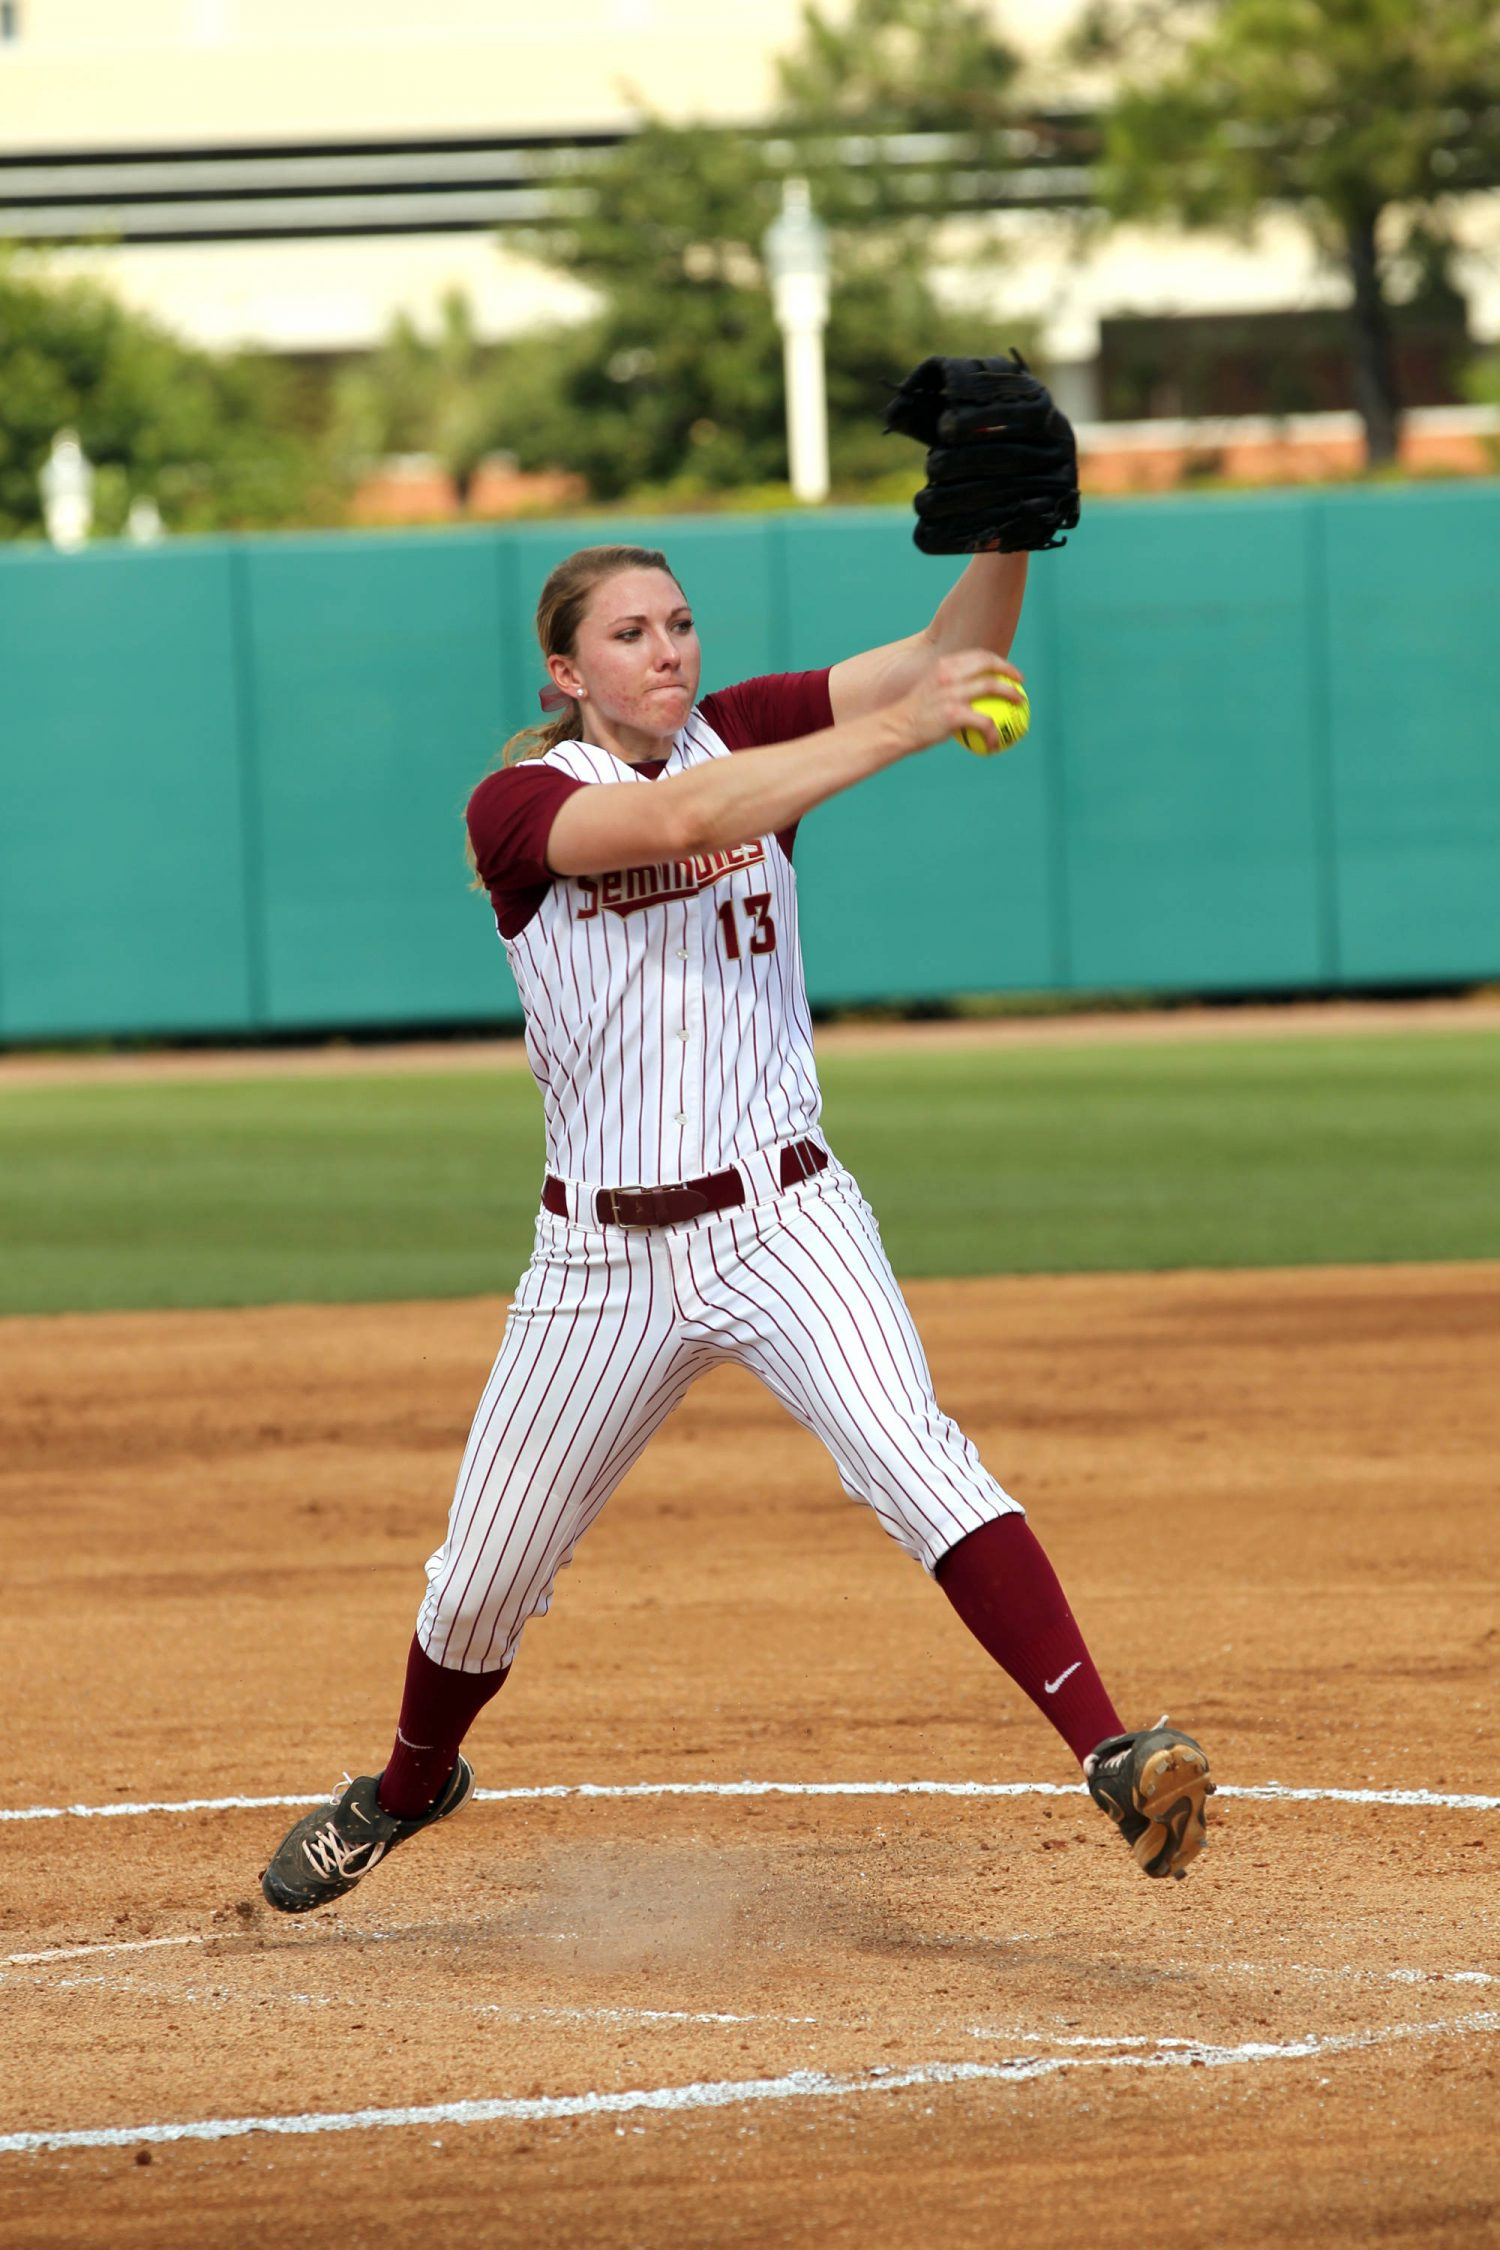 Lacey Waldrop, FSU VS BC, ACC Championship Quarterfinals, Tallahassee, FL,  05/09/13 . (Photo by Steve Musco)#$%^#$%^ Lacey Waldrop (13)